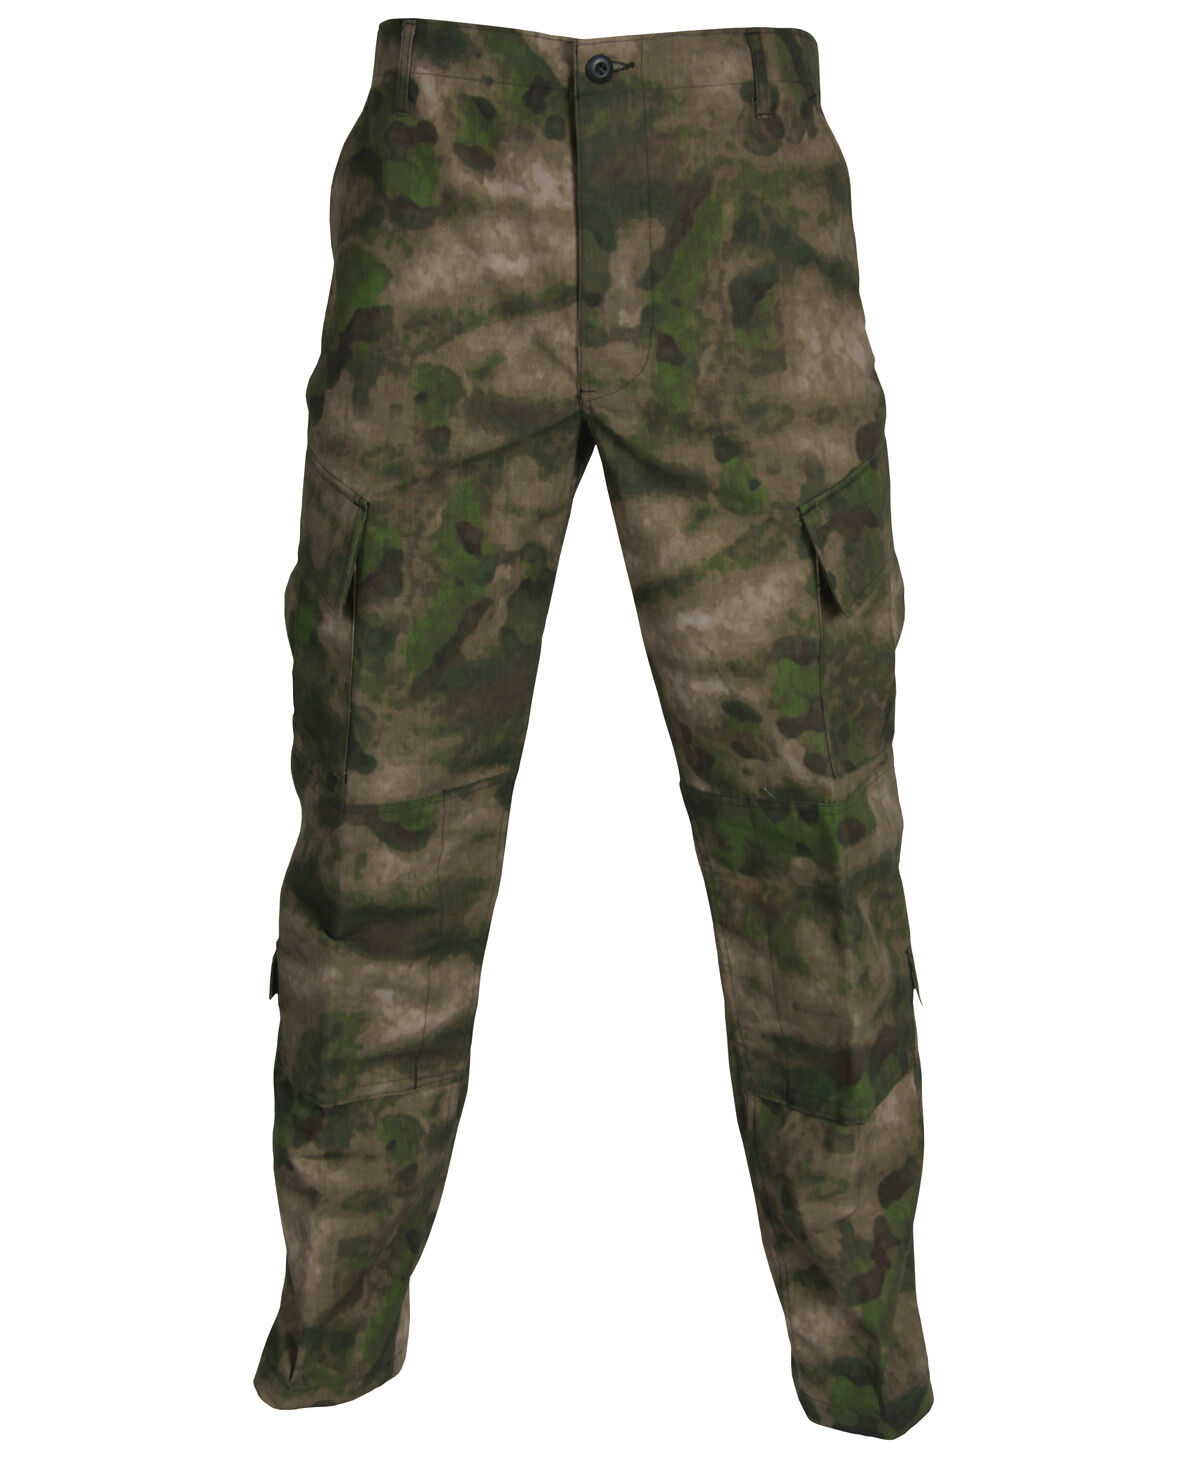 PROPPER F5209 A-TACS FG Camo Men's ACU Tactical Uniform Pant - FREE SHIPPING